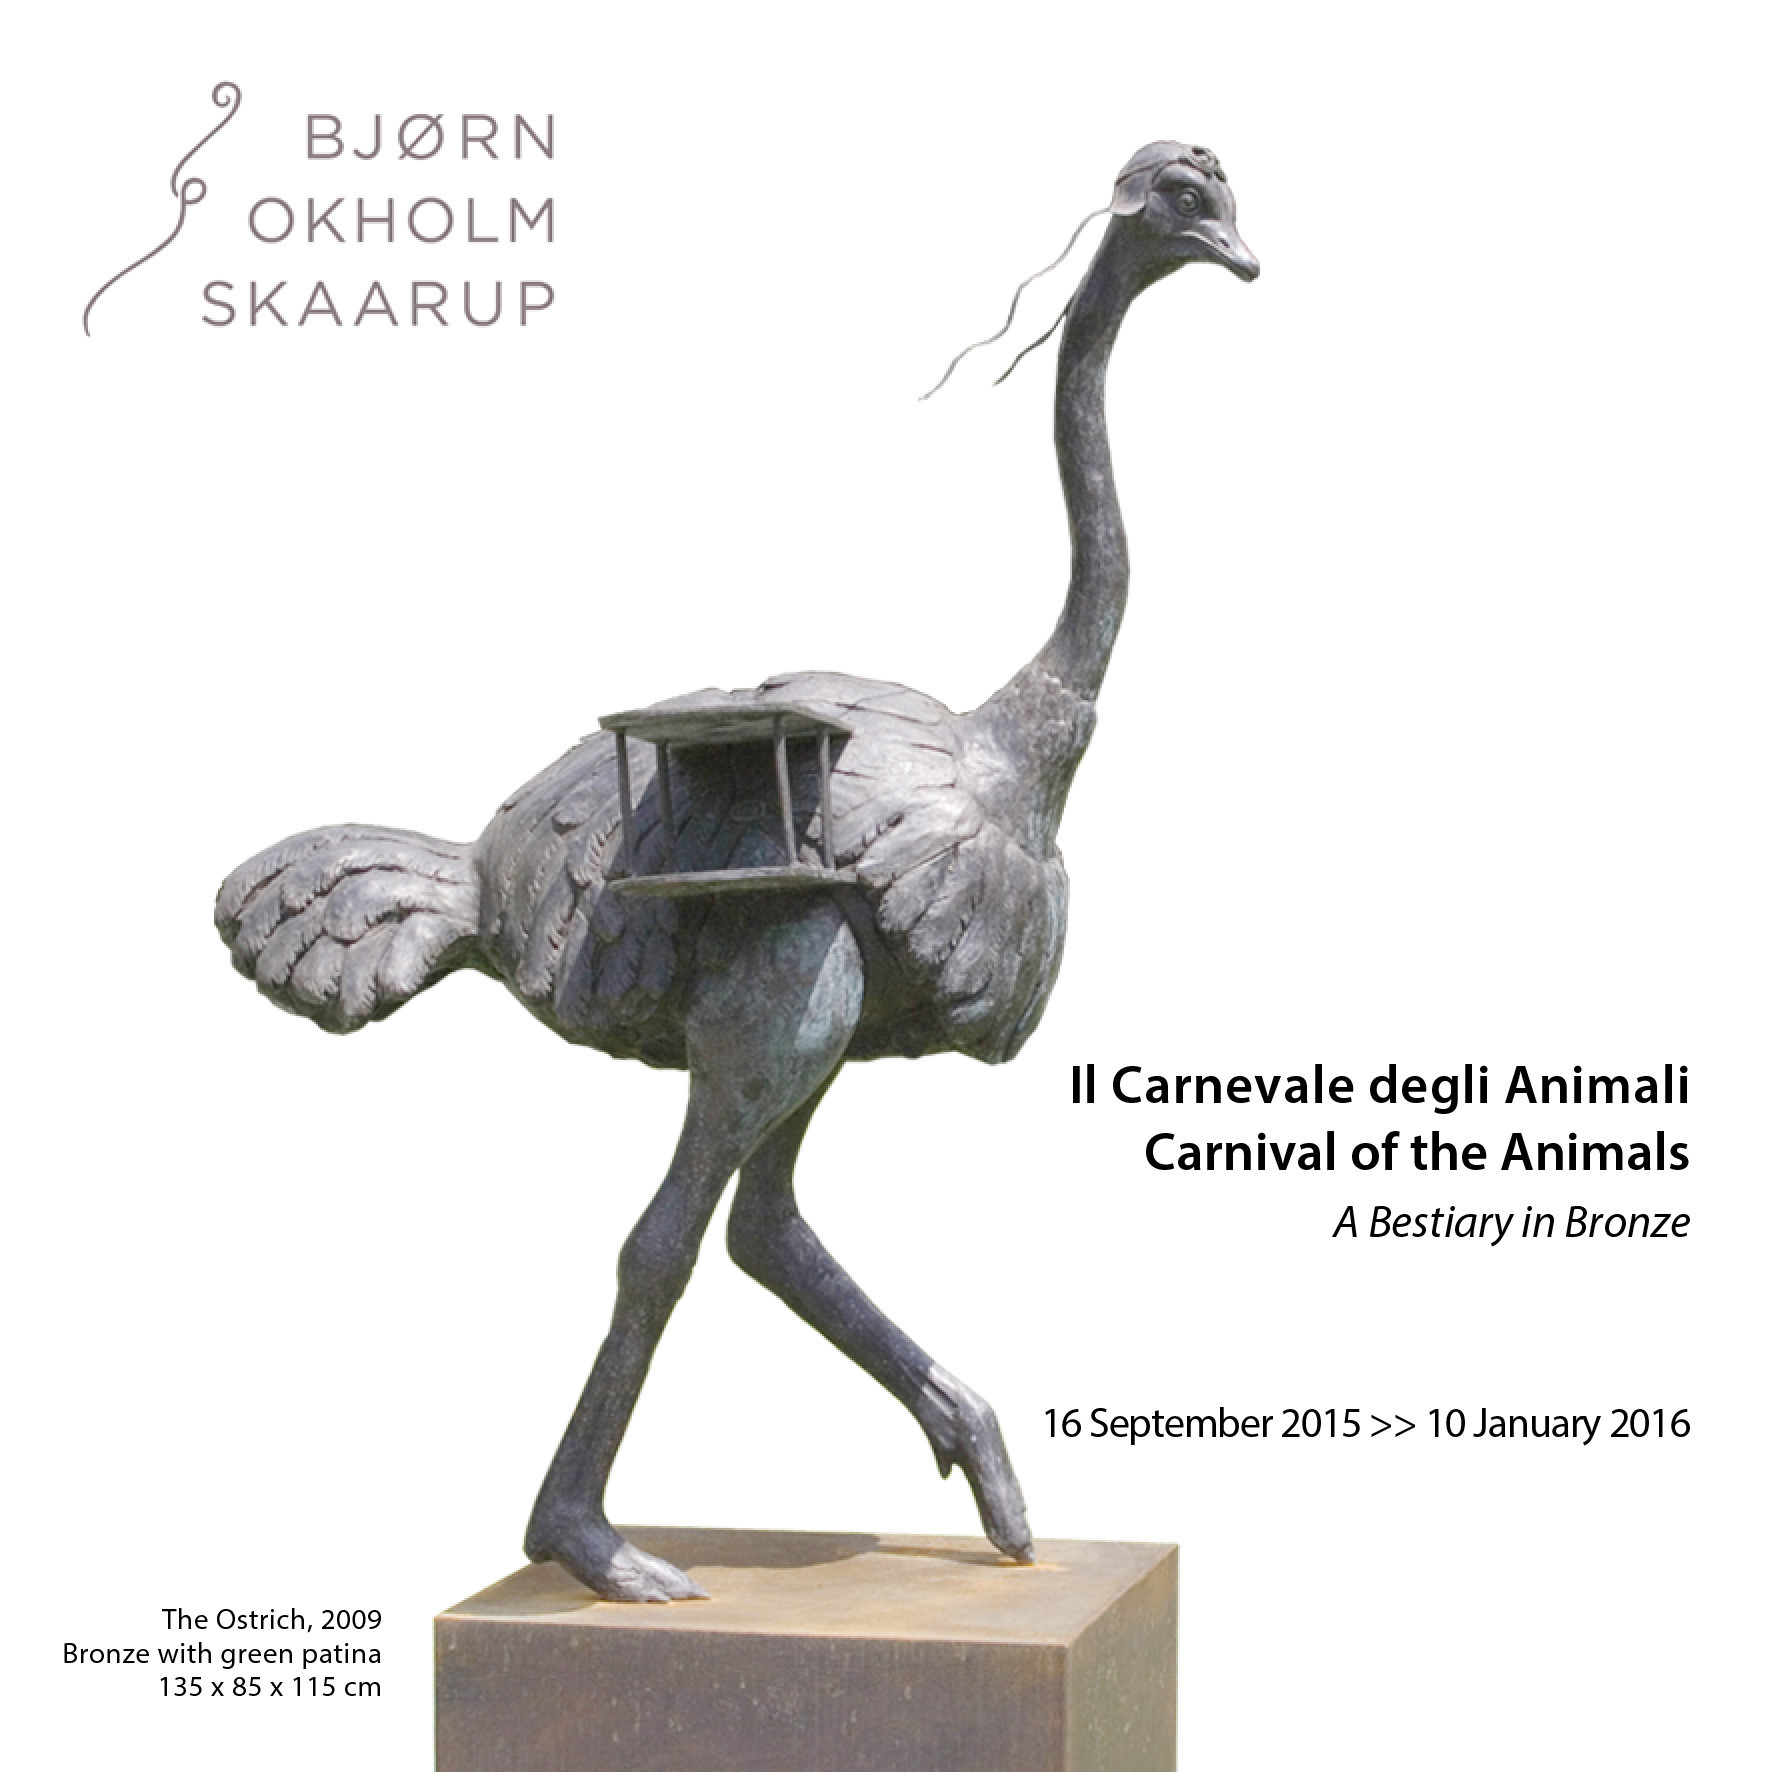 The+New+Exhibition+by+Bjorn+Okholm+Skaarup+%2C+%22The+Carnival+of+the+Animals+-A+Bestiary+in+bronze%22